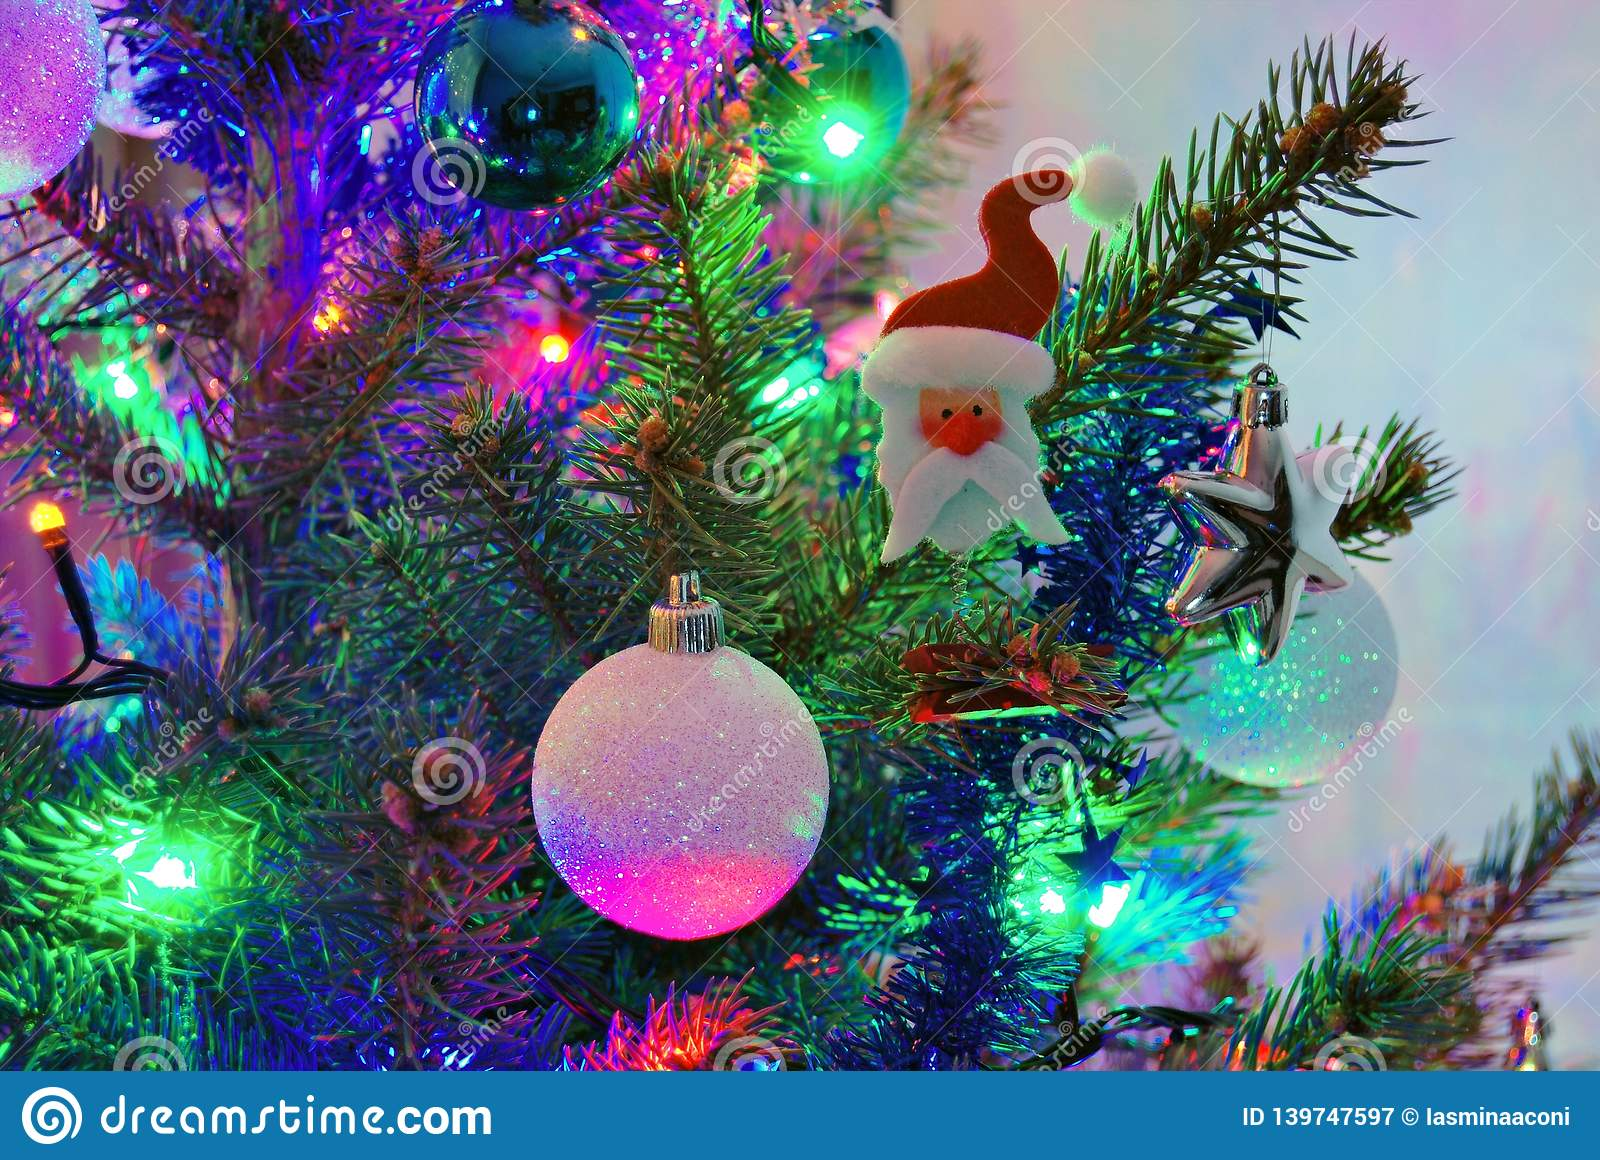 Santa Claus figurine in the Christmas tree